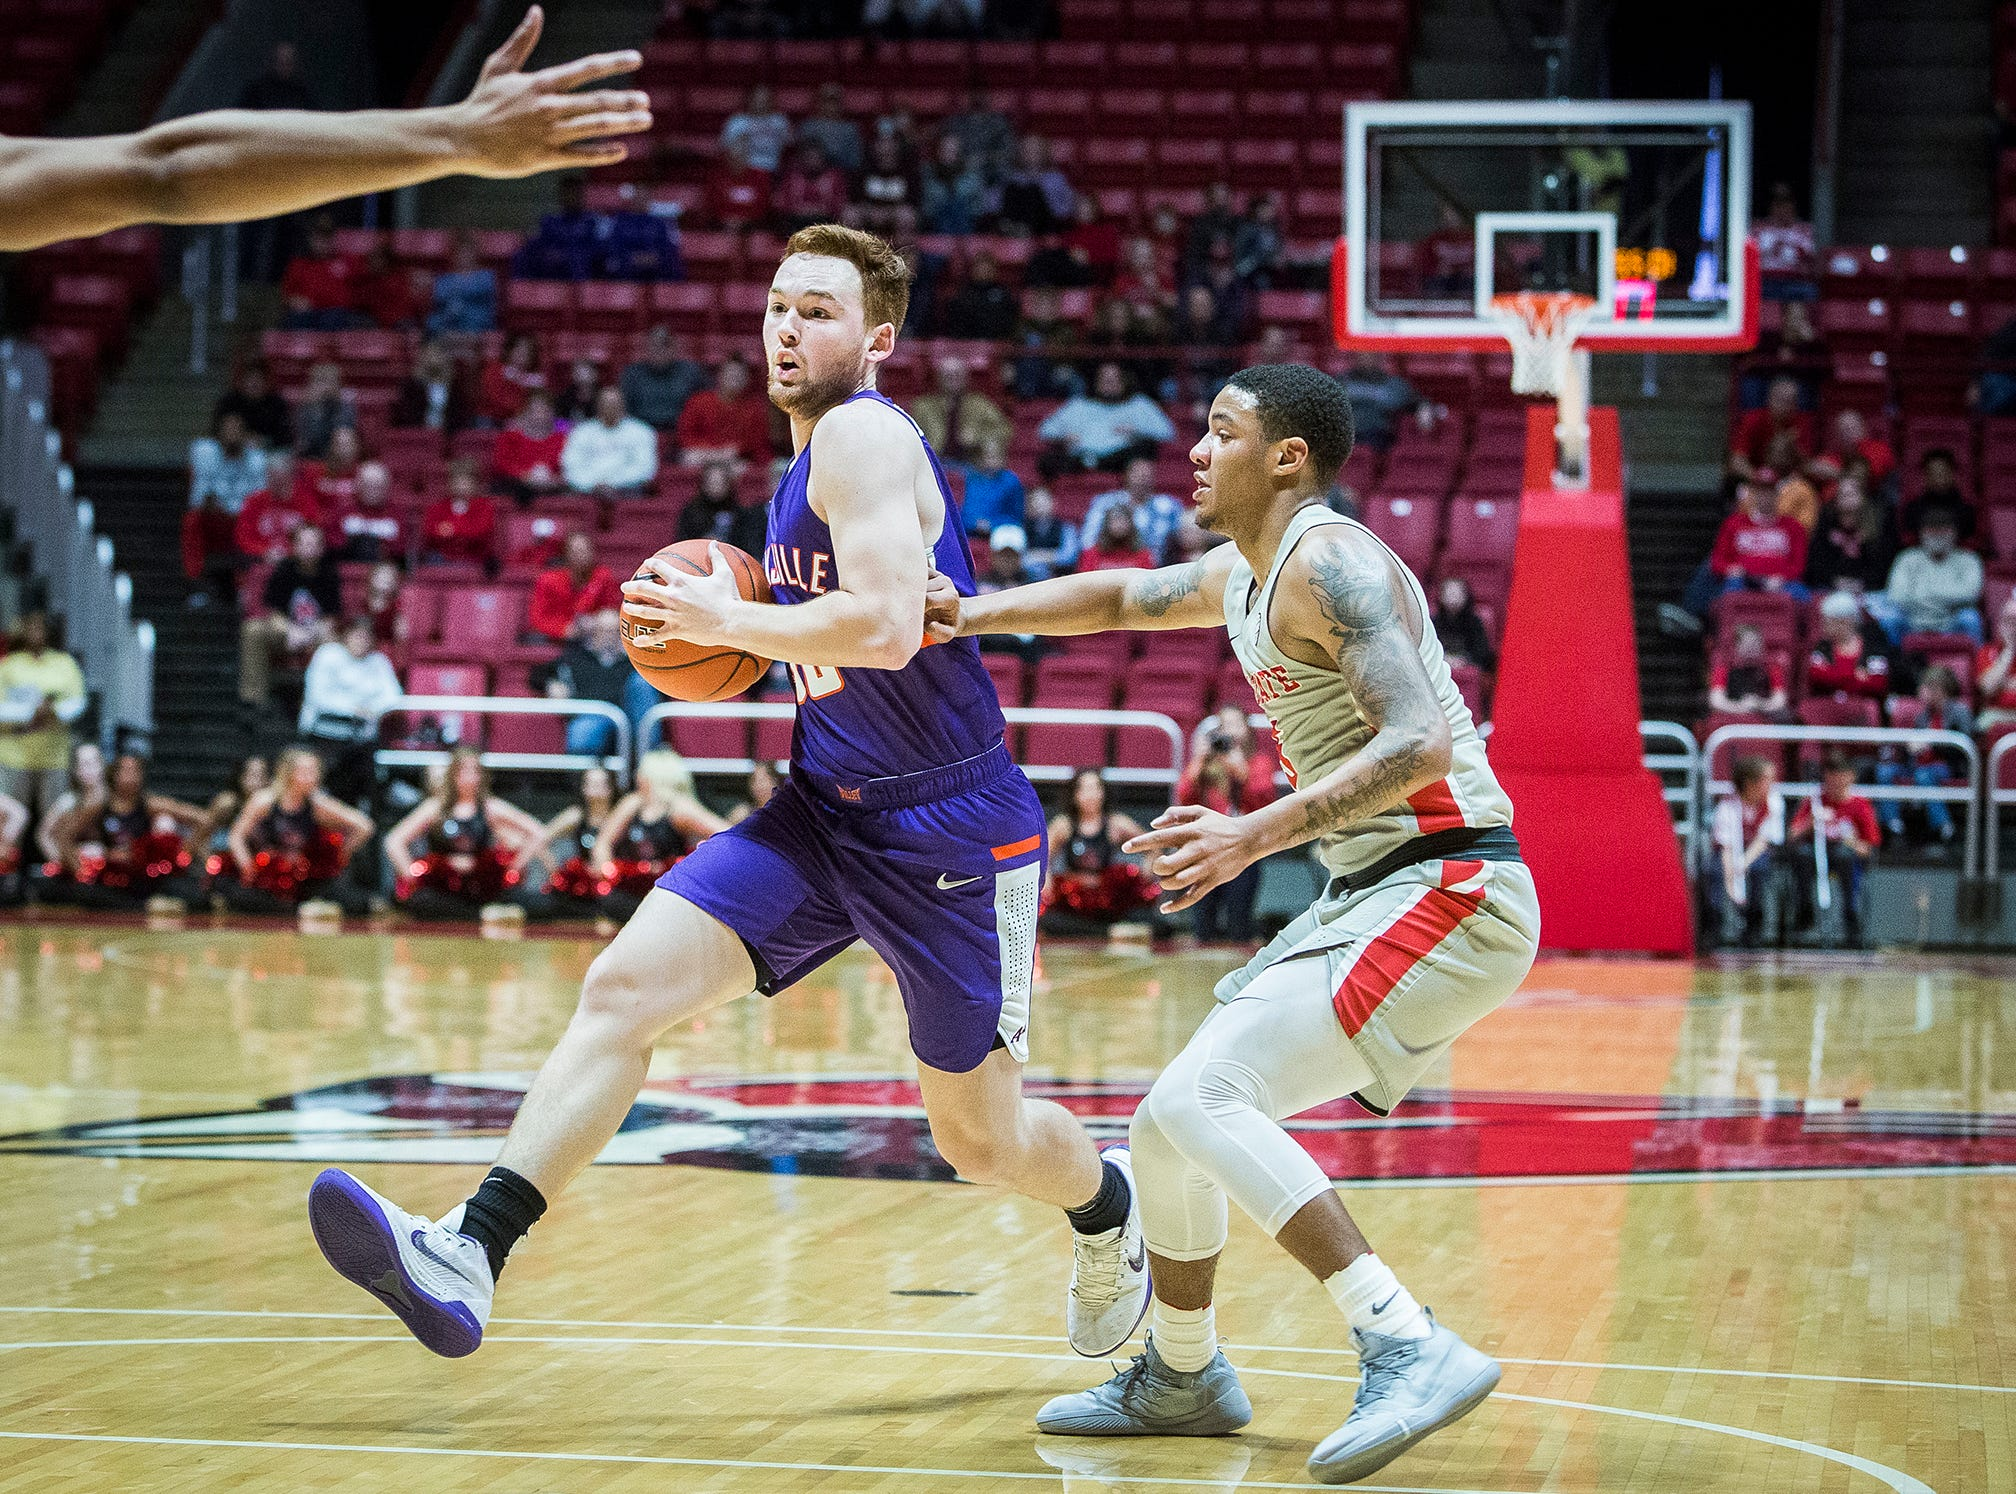 Ball State faces off against Evansville during their game at Worthen Arena Saturday, Nov. 24, 2018.